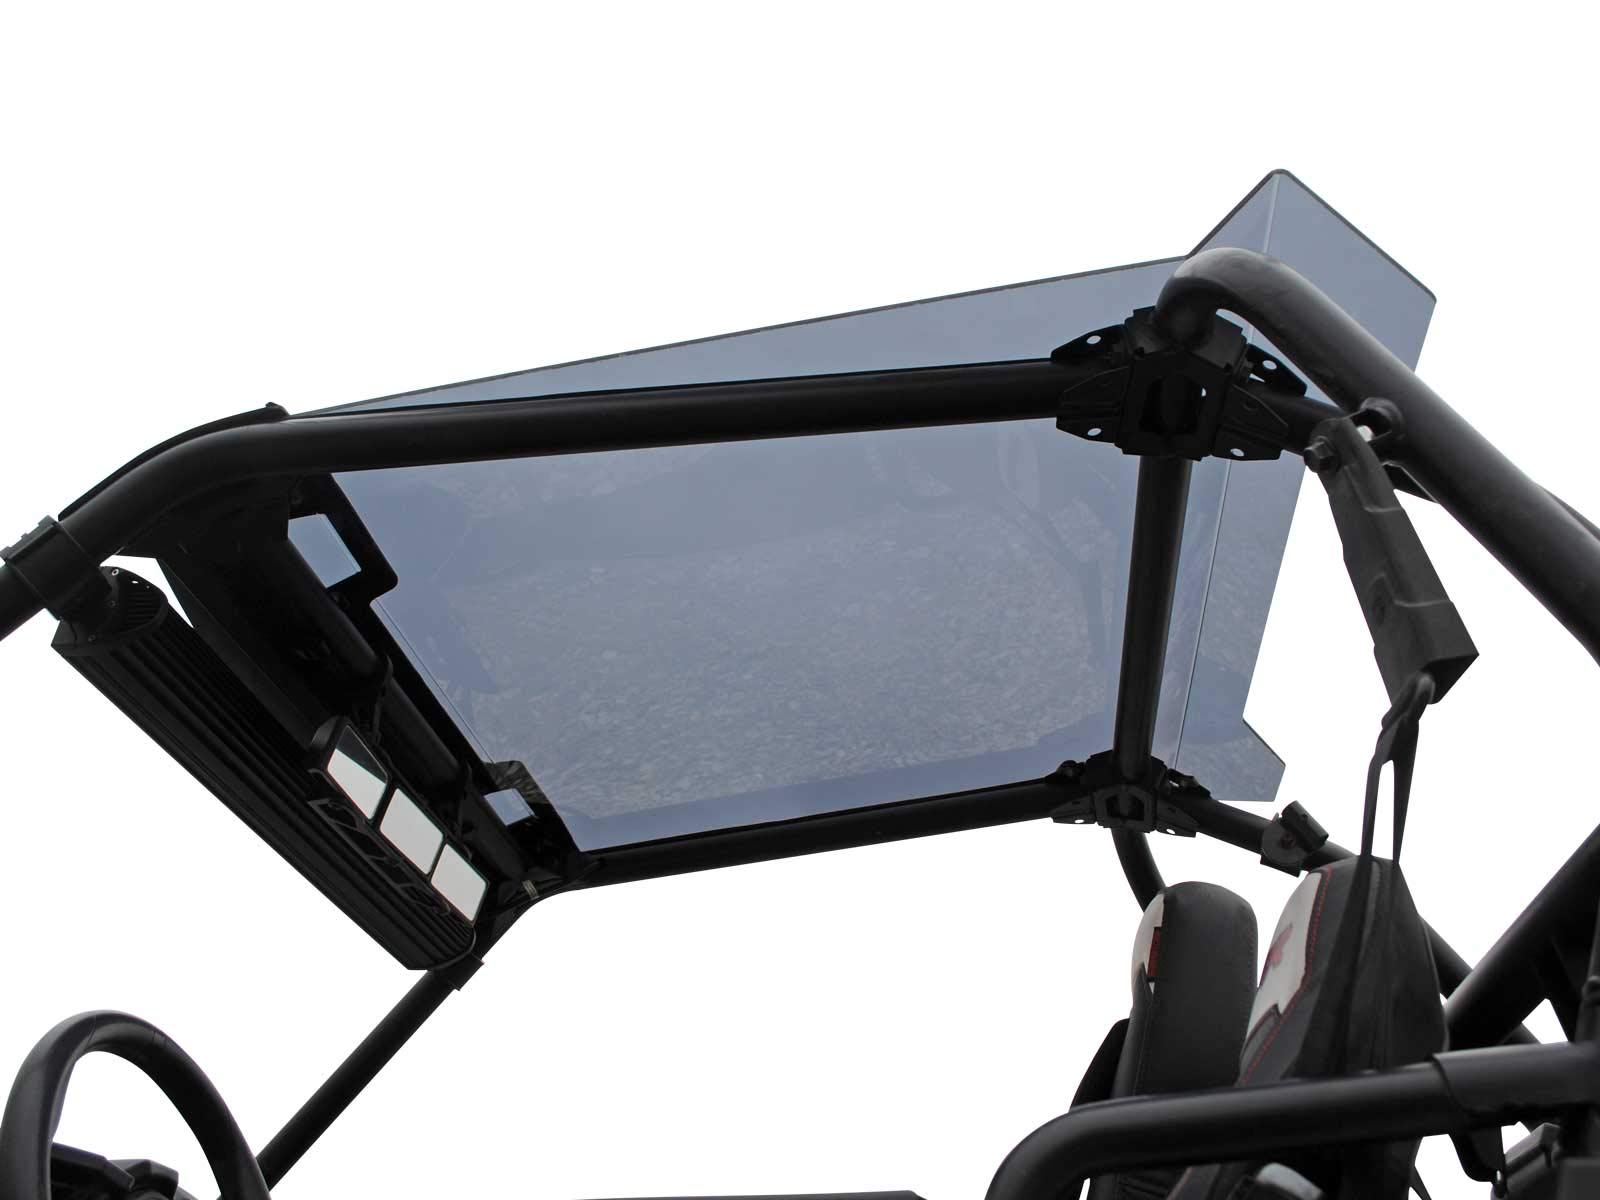 SuperATV Dark Tinted Roof With Spoiler for Polaris RZR 900 (2015+) - Easy to Install!